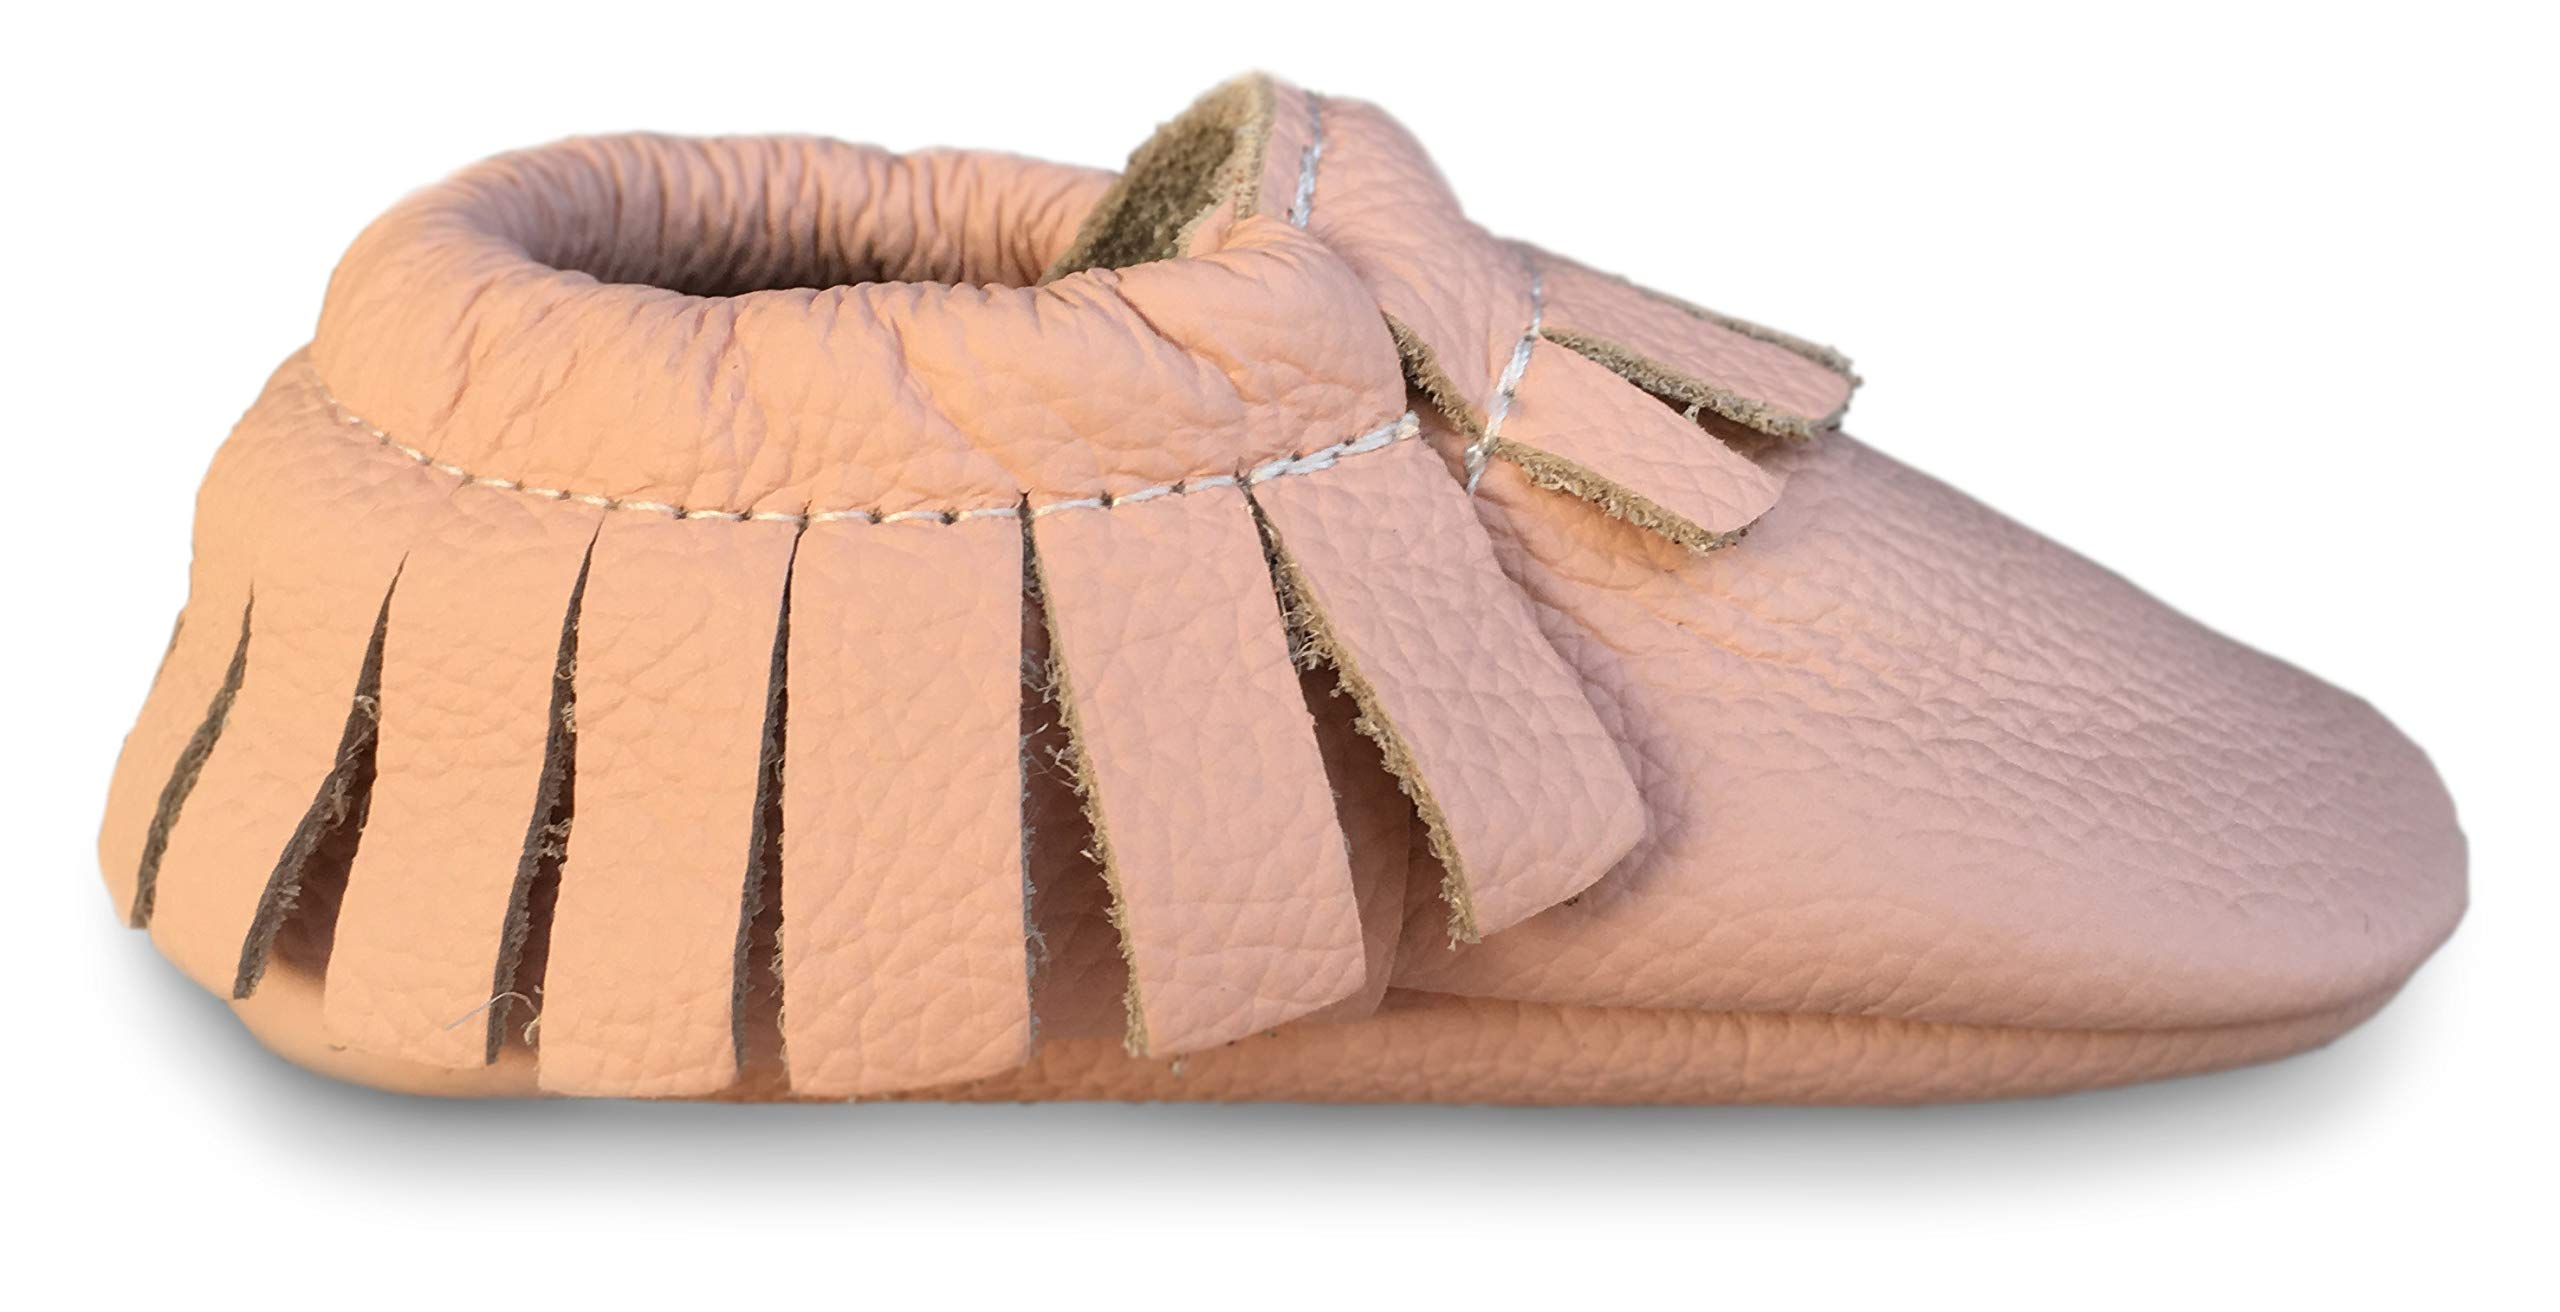 Lucky Love Baby Moccasins Premium Leather Infant, Baby & Toddler Shoes for Girls and Boys (6-12 Months | Size 3.5 US, Blush)